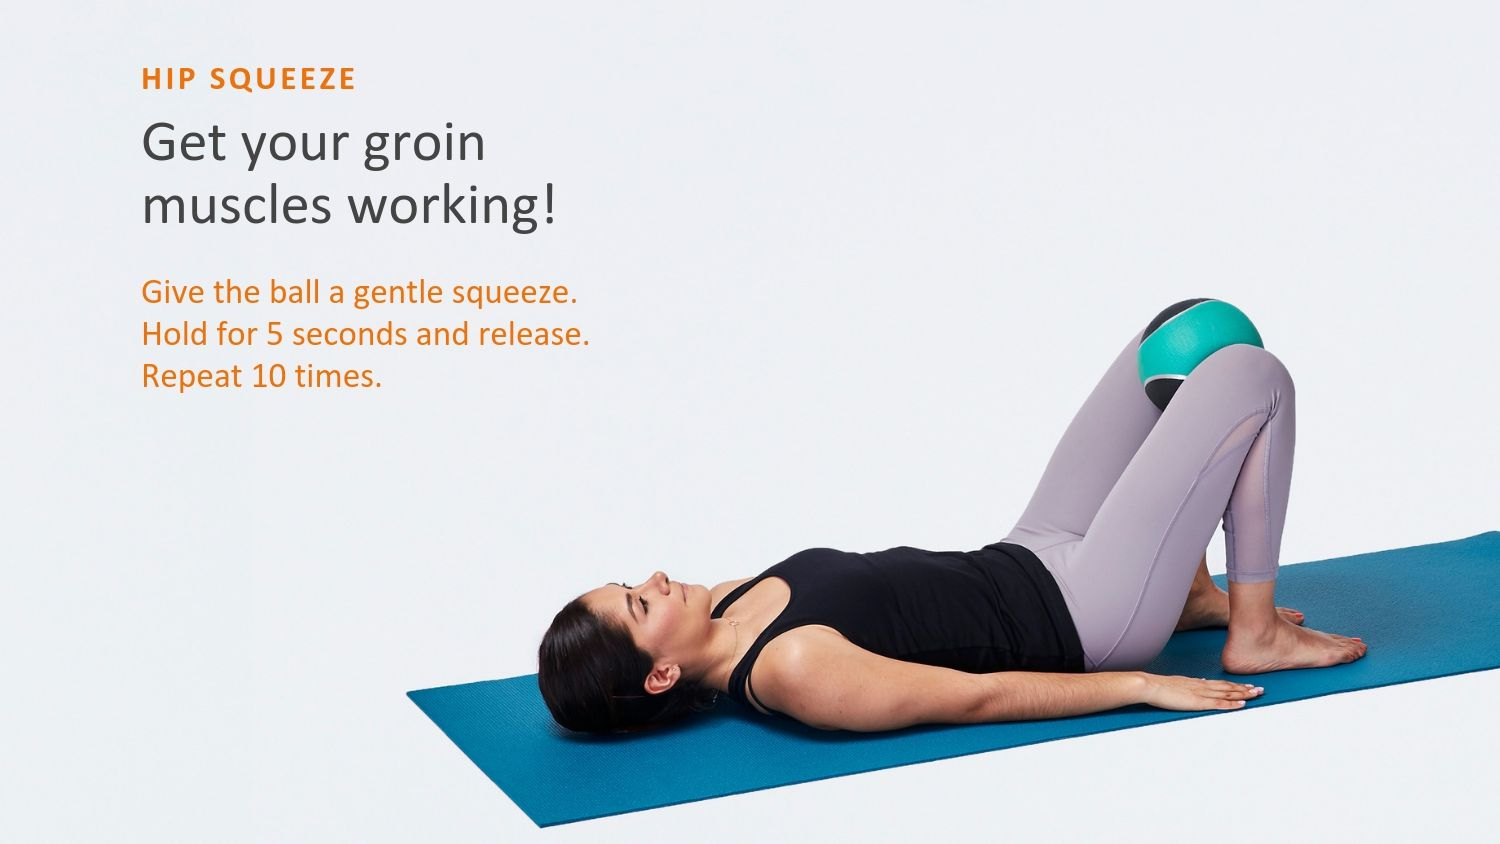 Exercises To Keep Your Hips Strong And Mobile